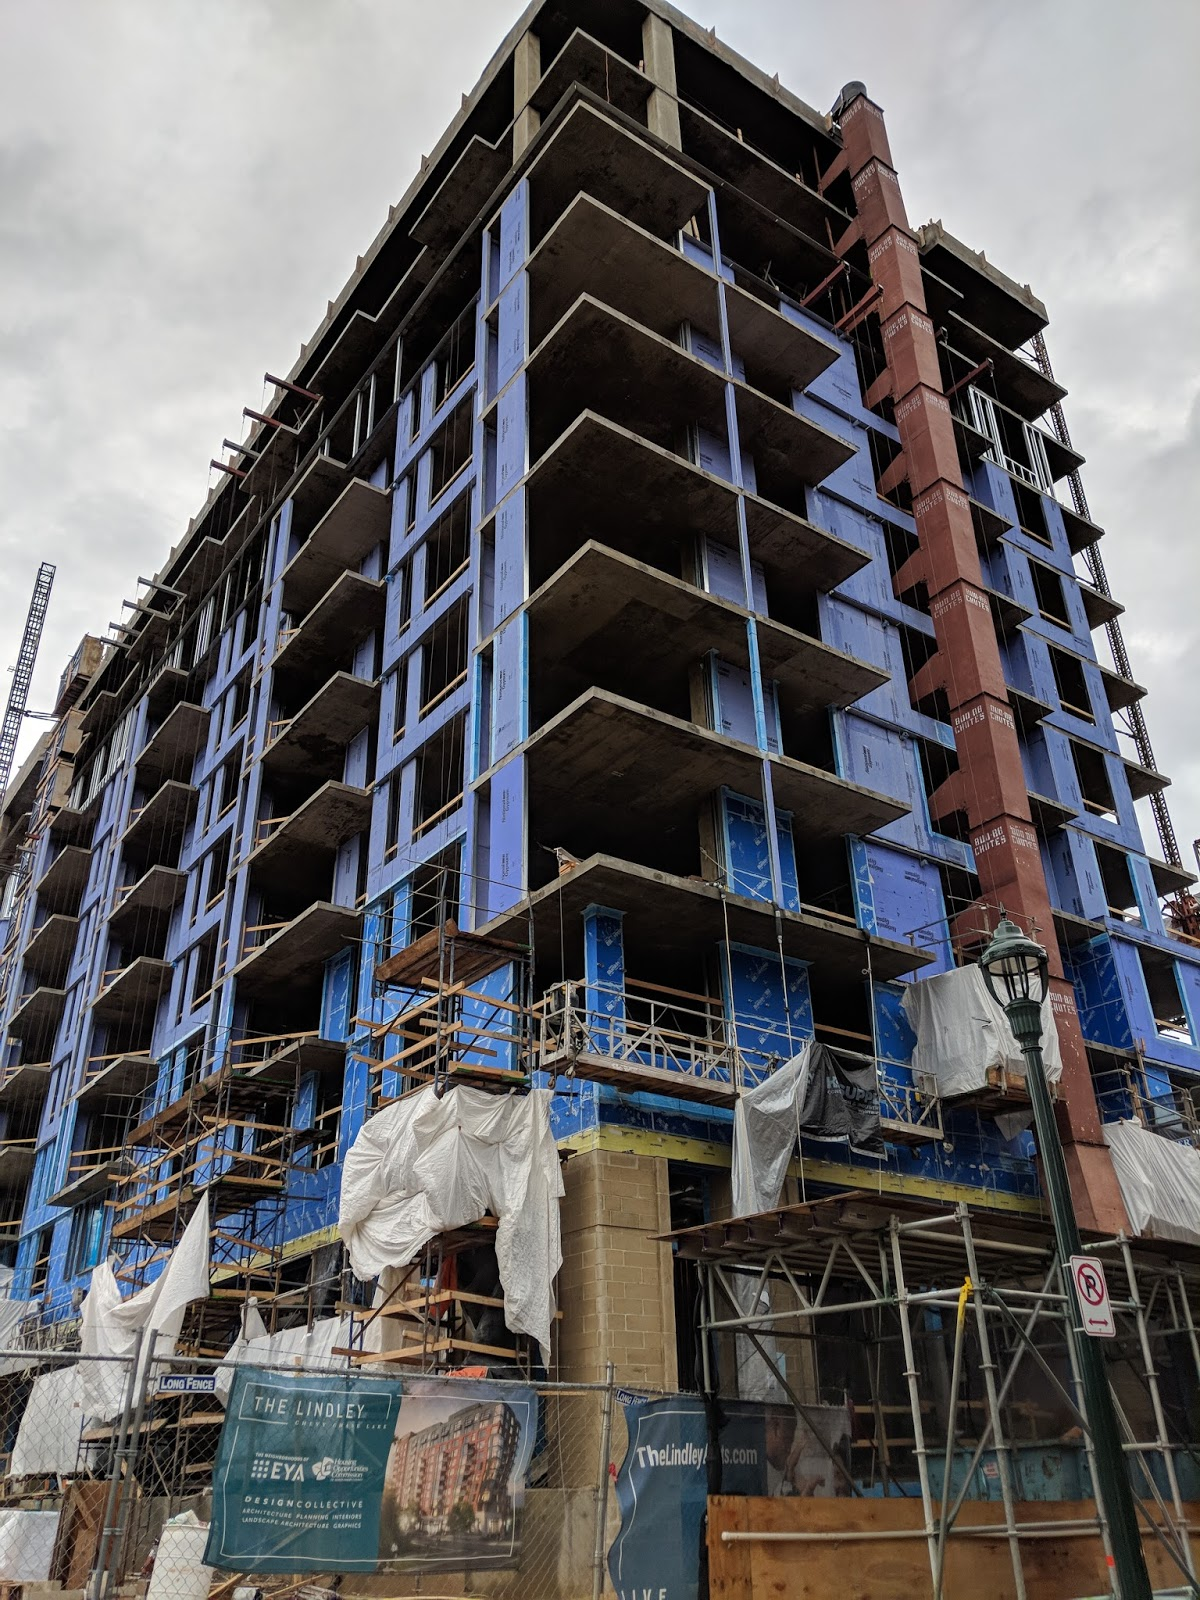 Pre Leasing Of Apartments Is Expected To Commence In June, And First  Move Ins Are Anticipated In September. The Lindleyu0027s Developers Are EYA And  The ...